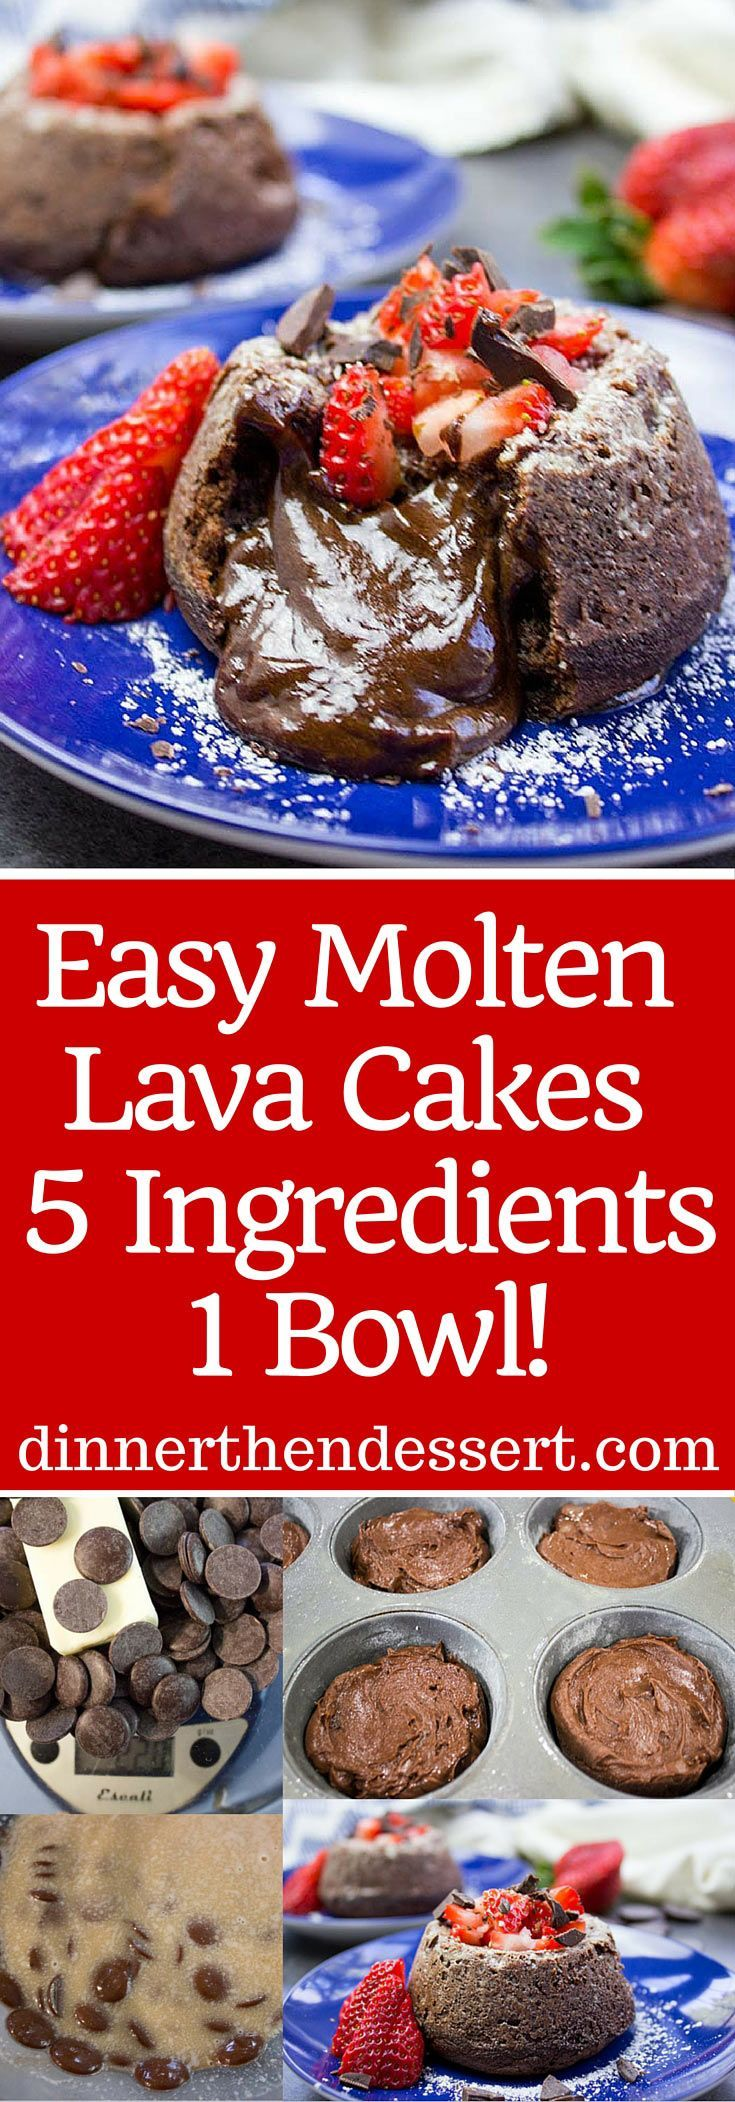 With only 5 Ingredients and 1 bowl these Easy Chocolate Molten Lava Cakes will be in your oven in less than 10 minutes and on your table in less than 30!